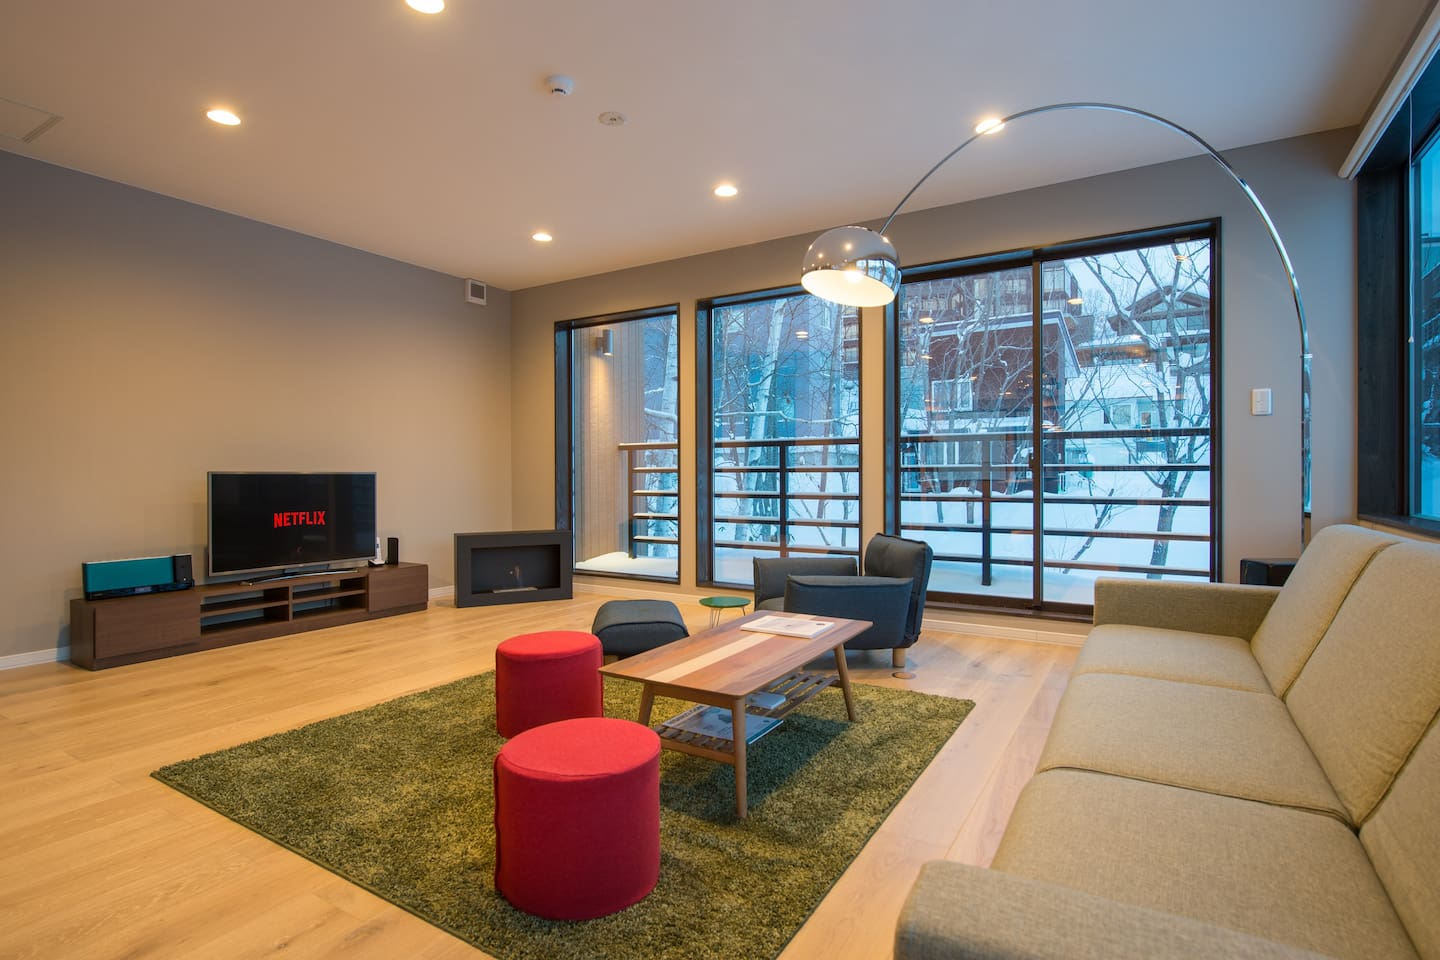 3bdr snow monkey 2 with fireplace netflix air con houses for